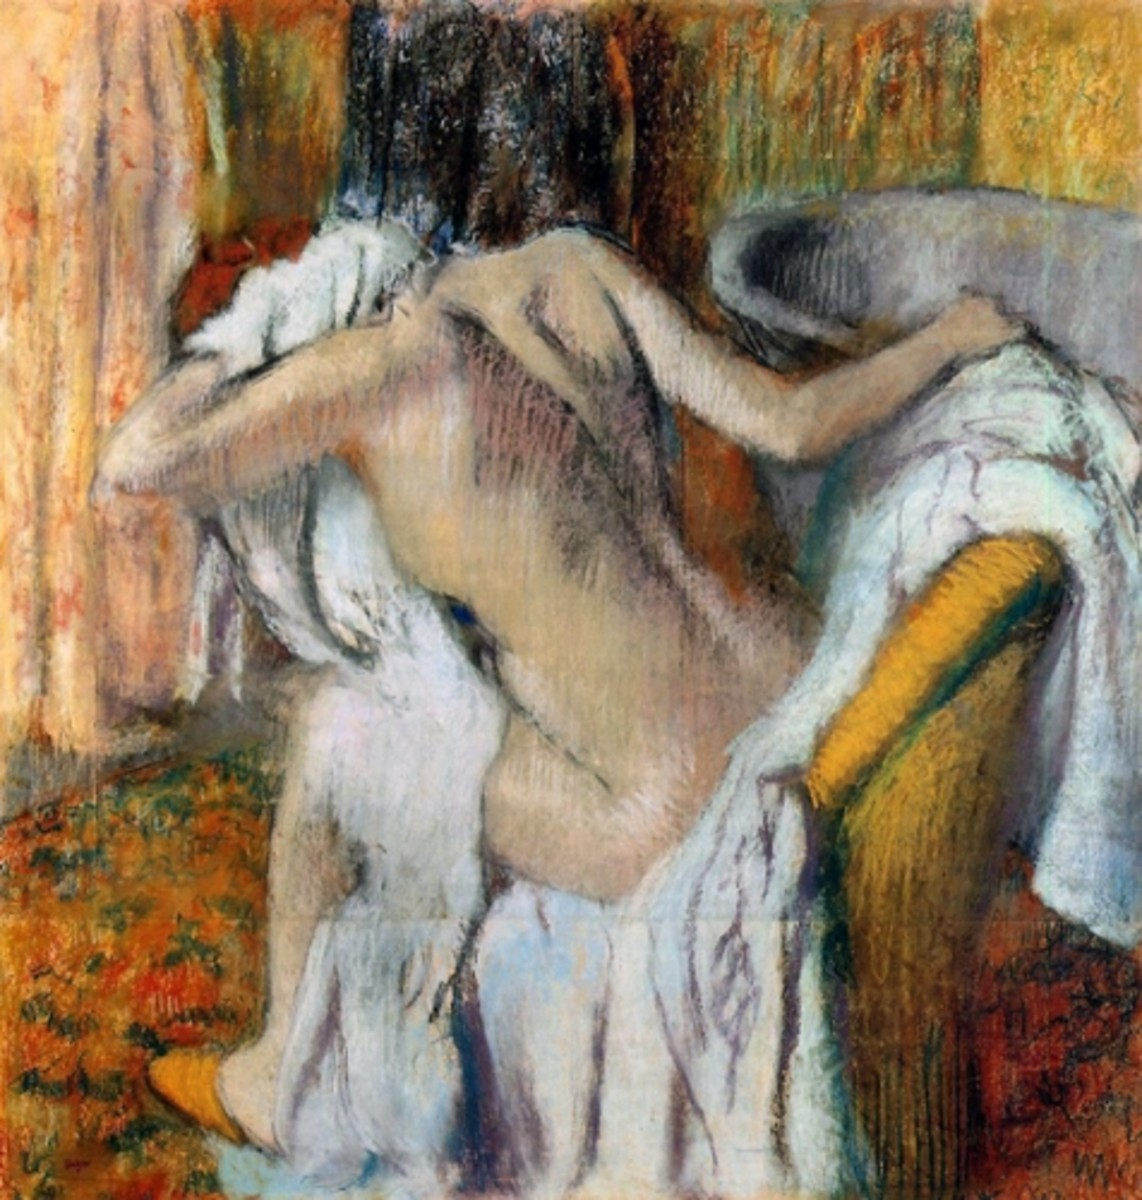 Degas' After the Bath. Much of the sensuality of the Awakening is achieved by suggesting sexual tensions but not describing sexual encounters.